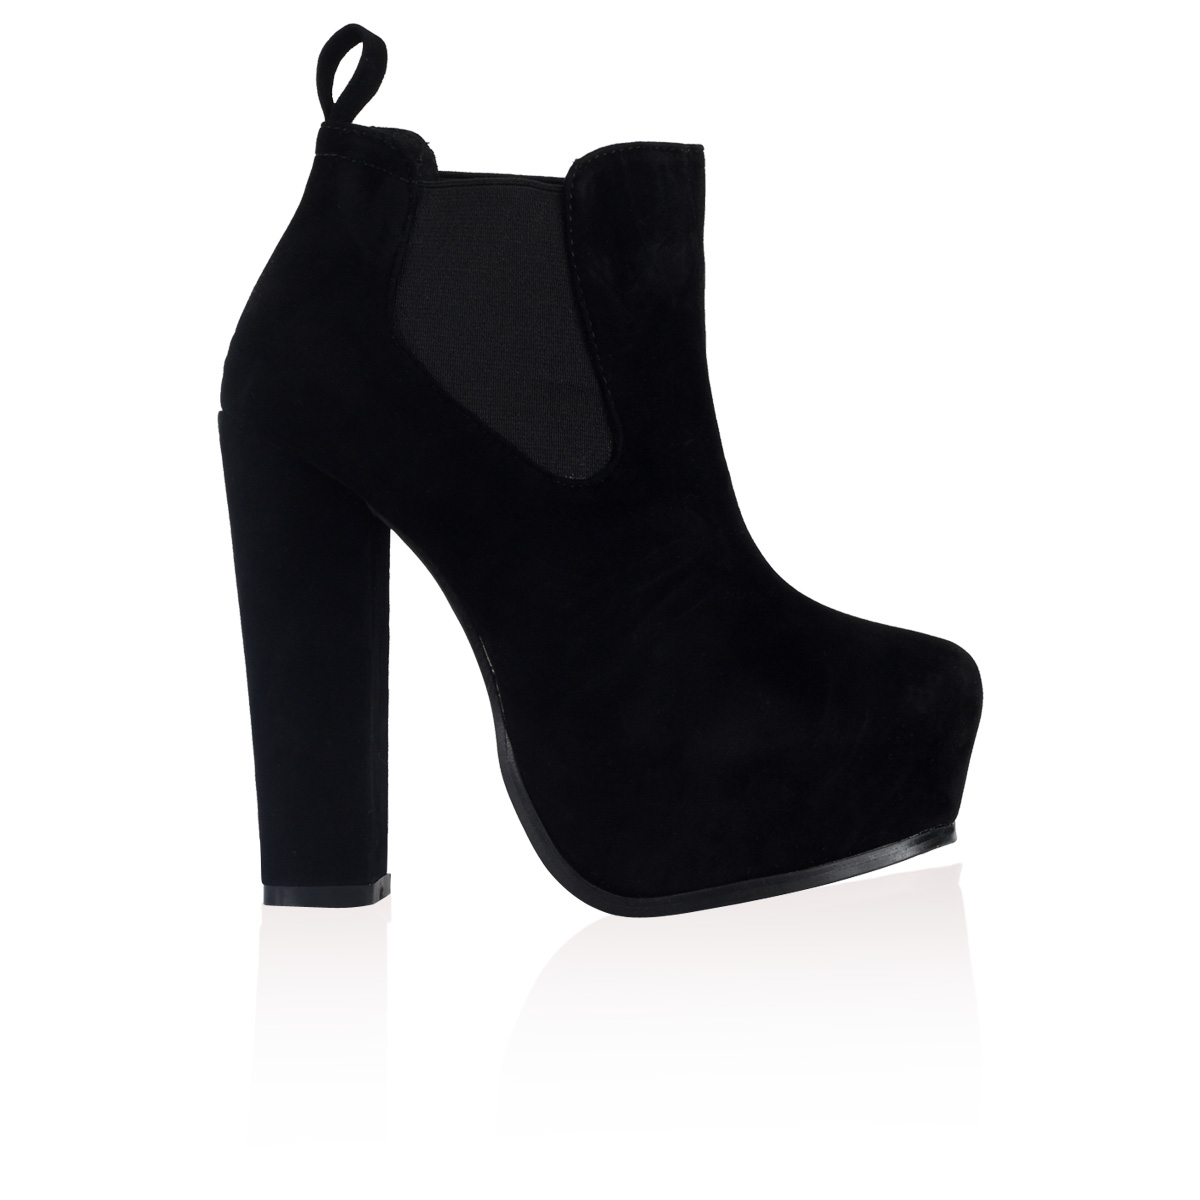 Find great deals on eBay for black suede block heel chelsea boots. Shop with confidence.